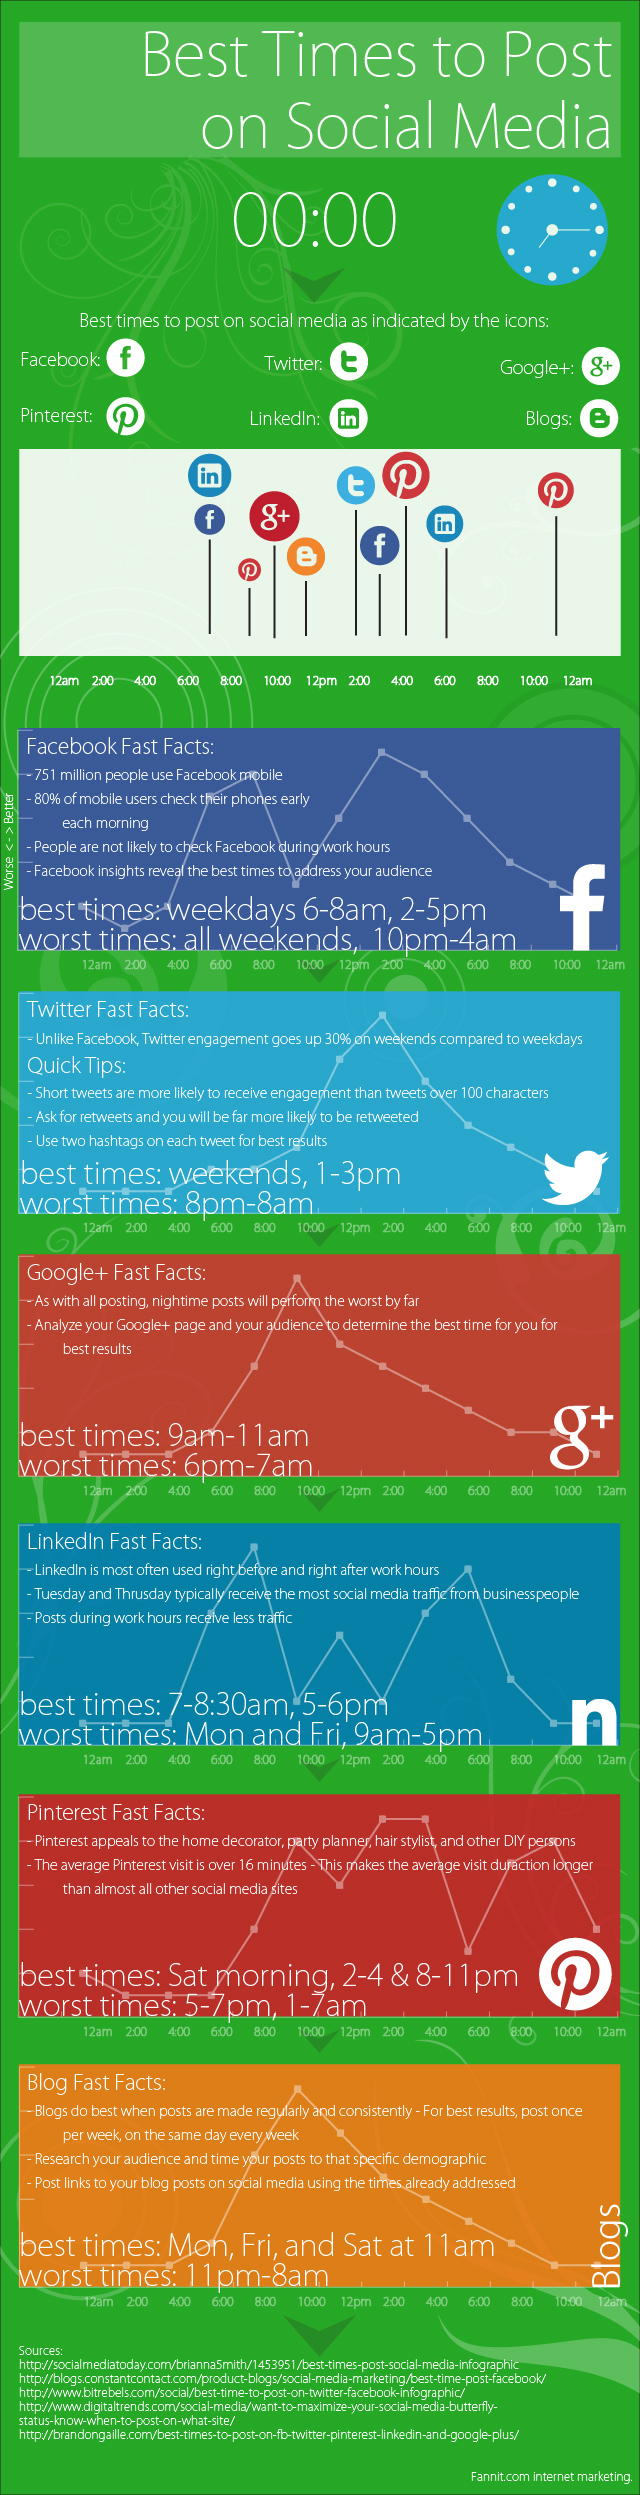 social-media-infographic-when-are-the-best-times-to-post (1)